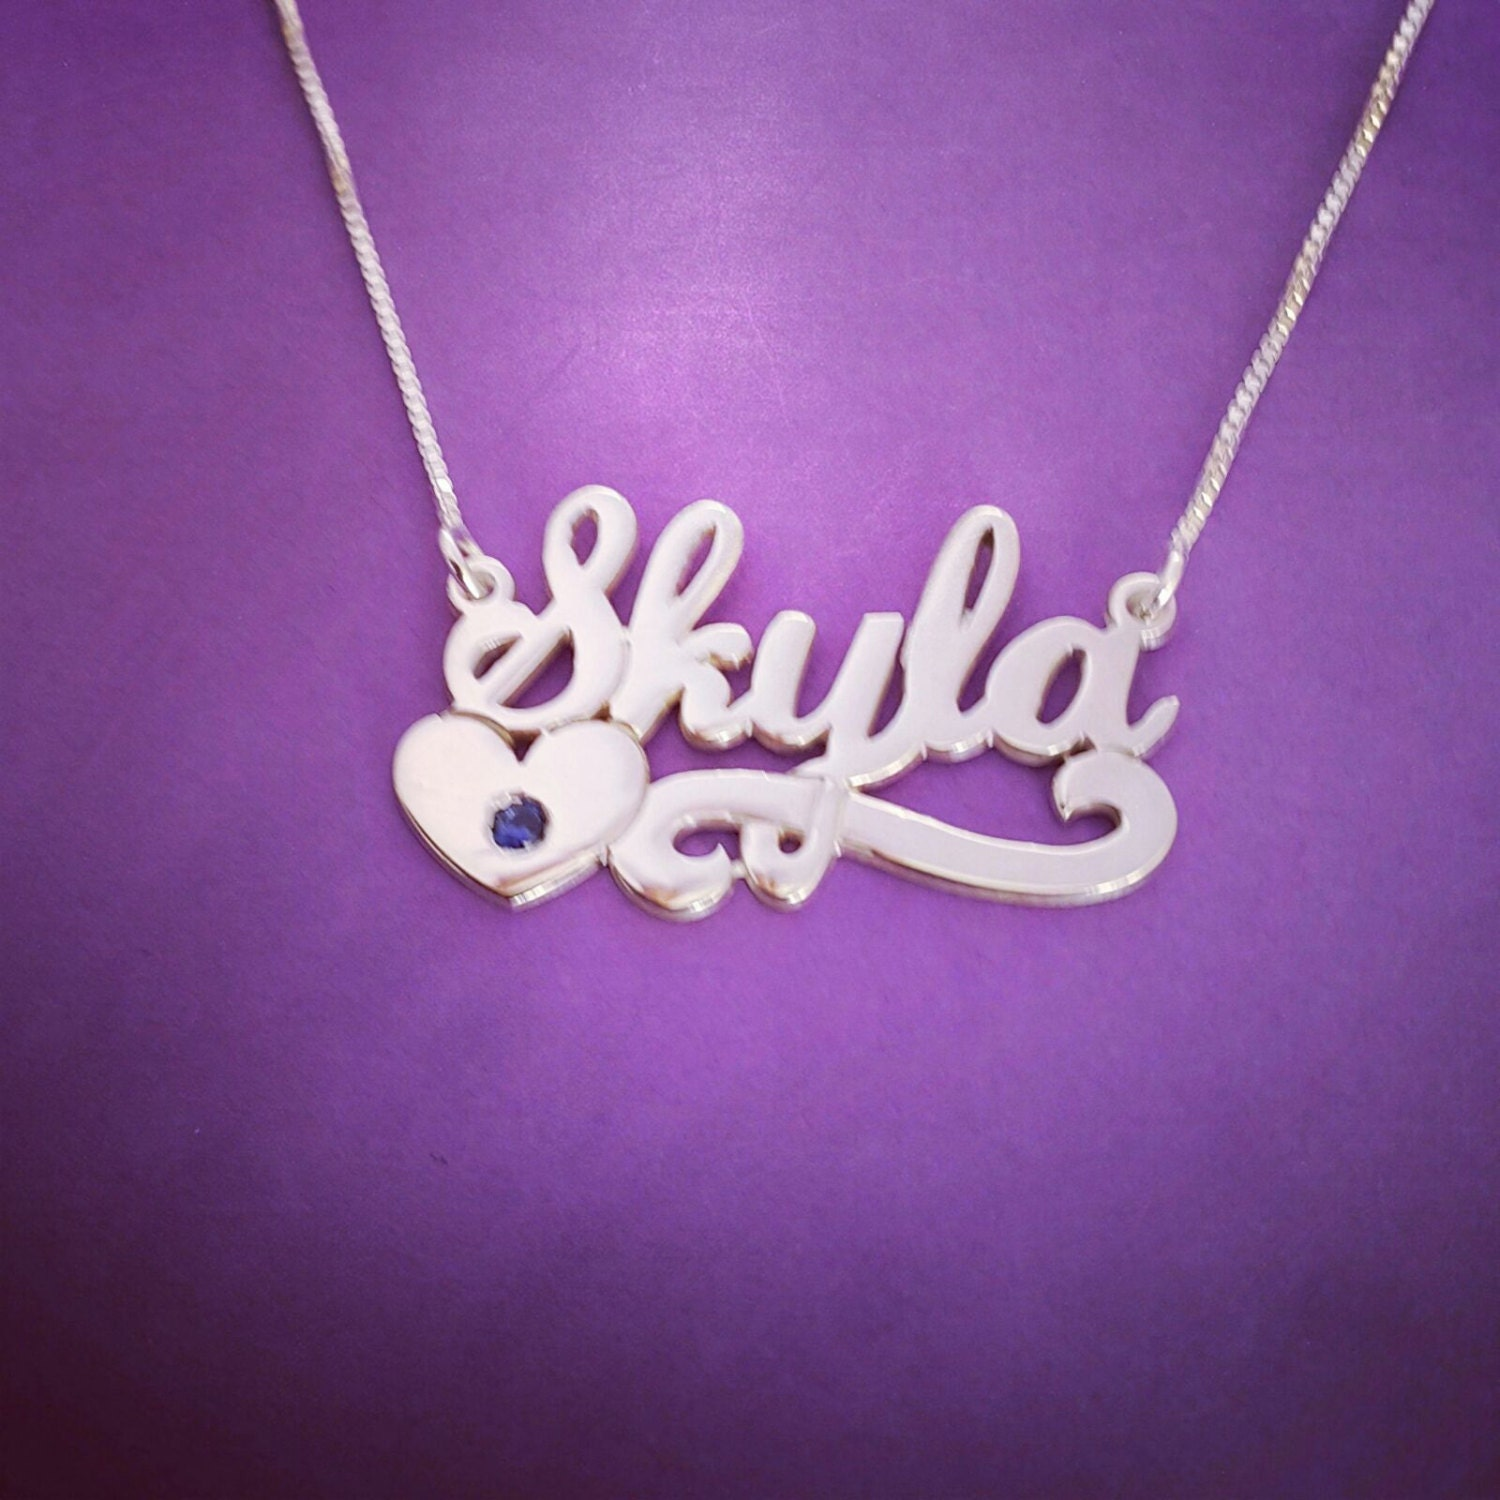 word necklace kyla name on necklace birthday gift heart